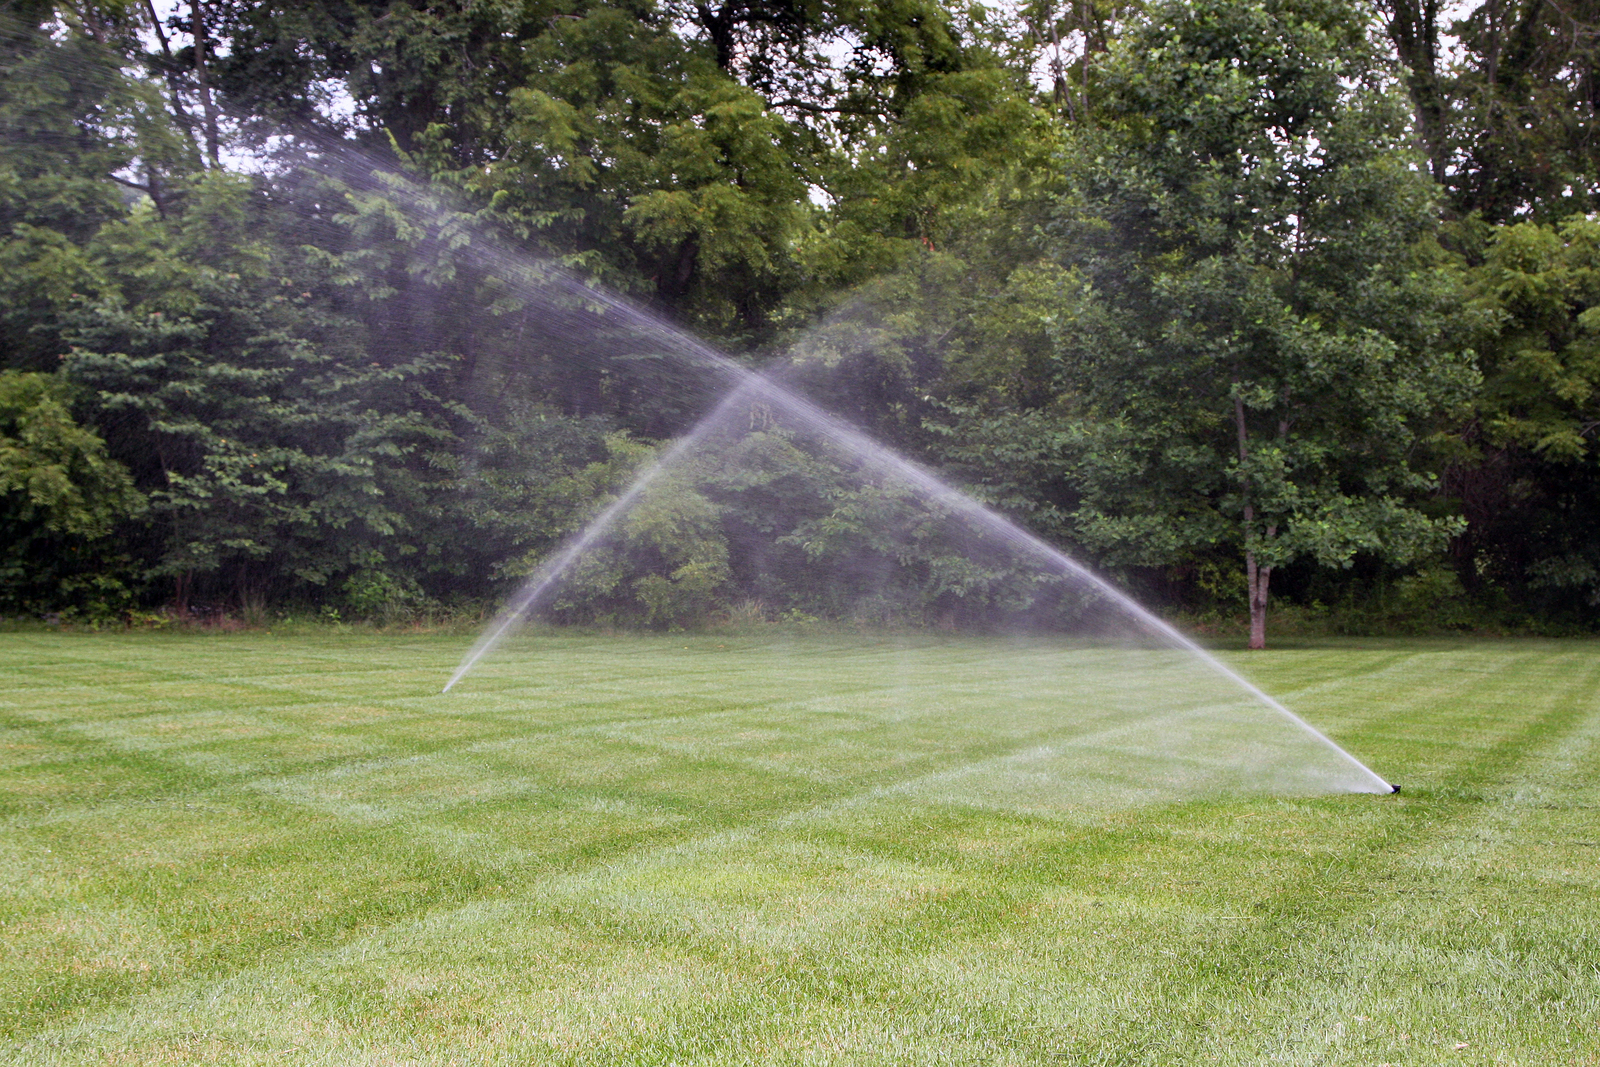 Lawn irrigation system with cross pattern of mowing.